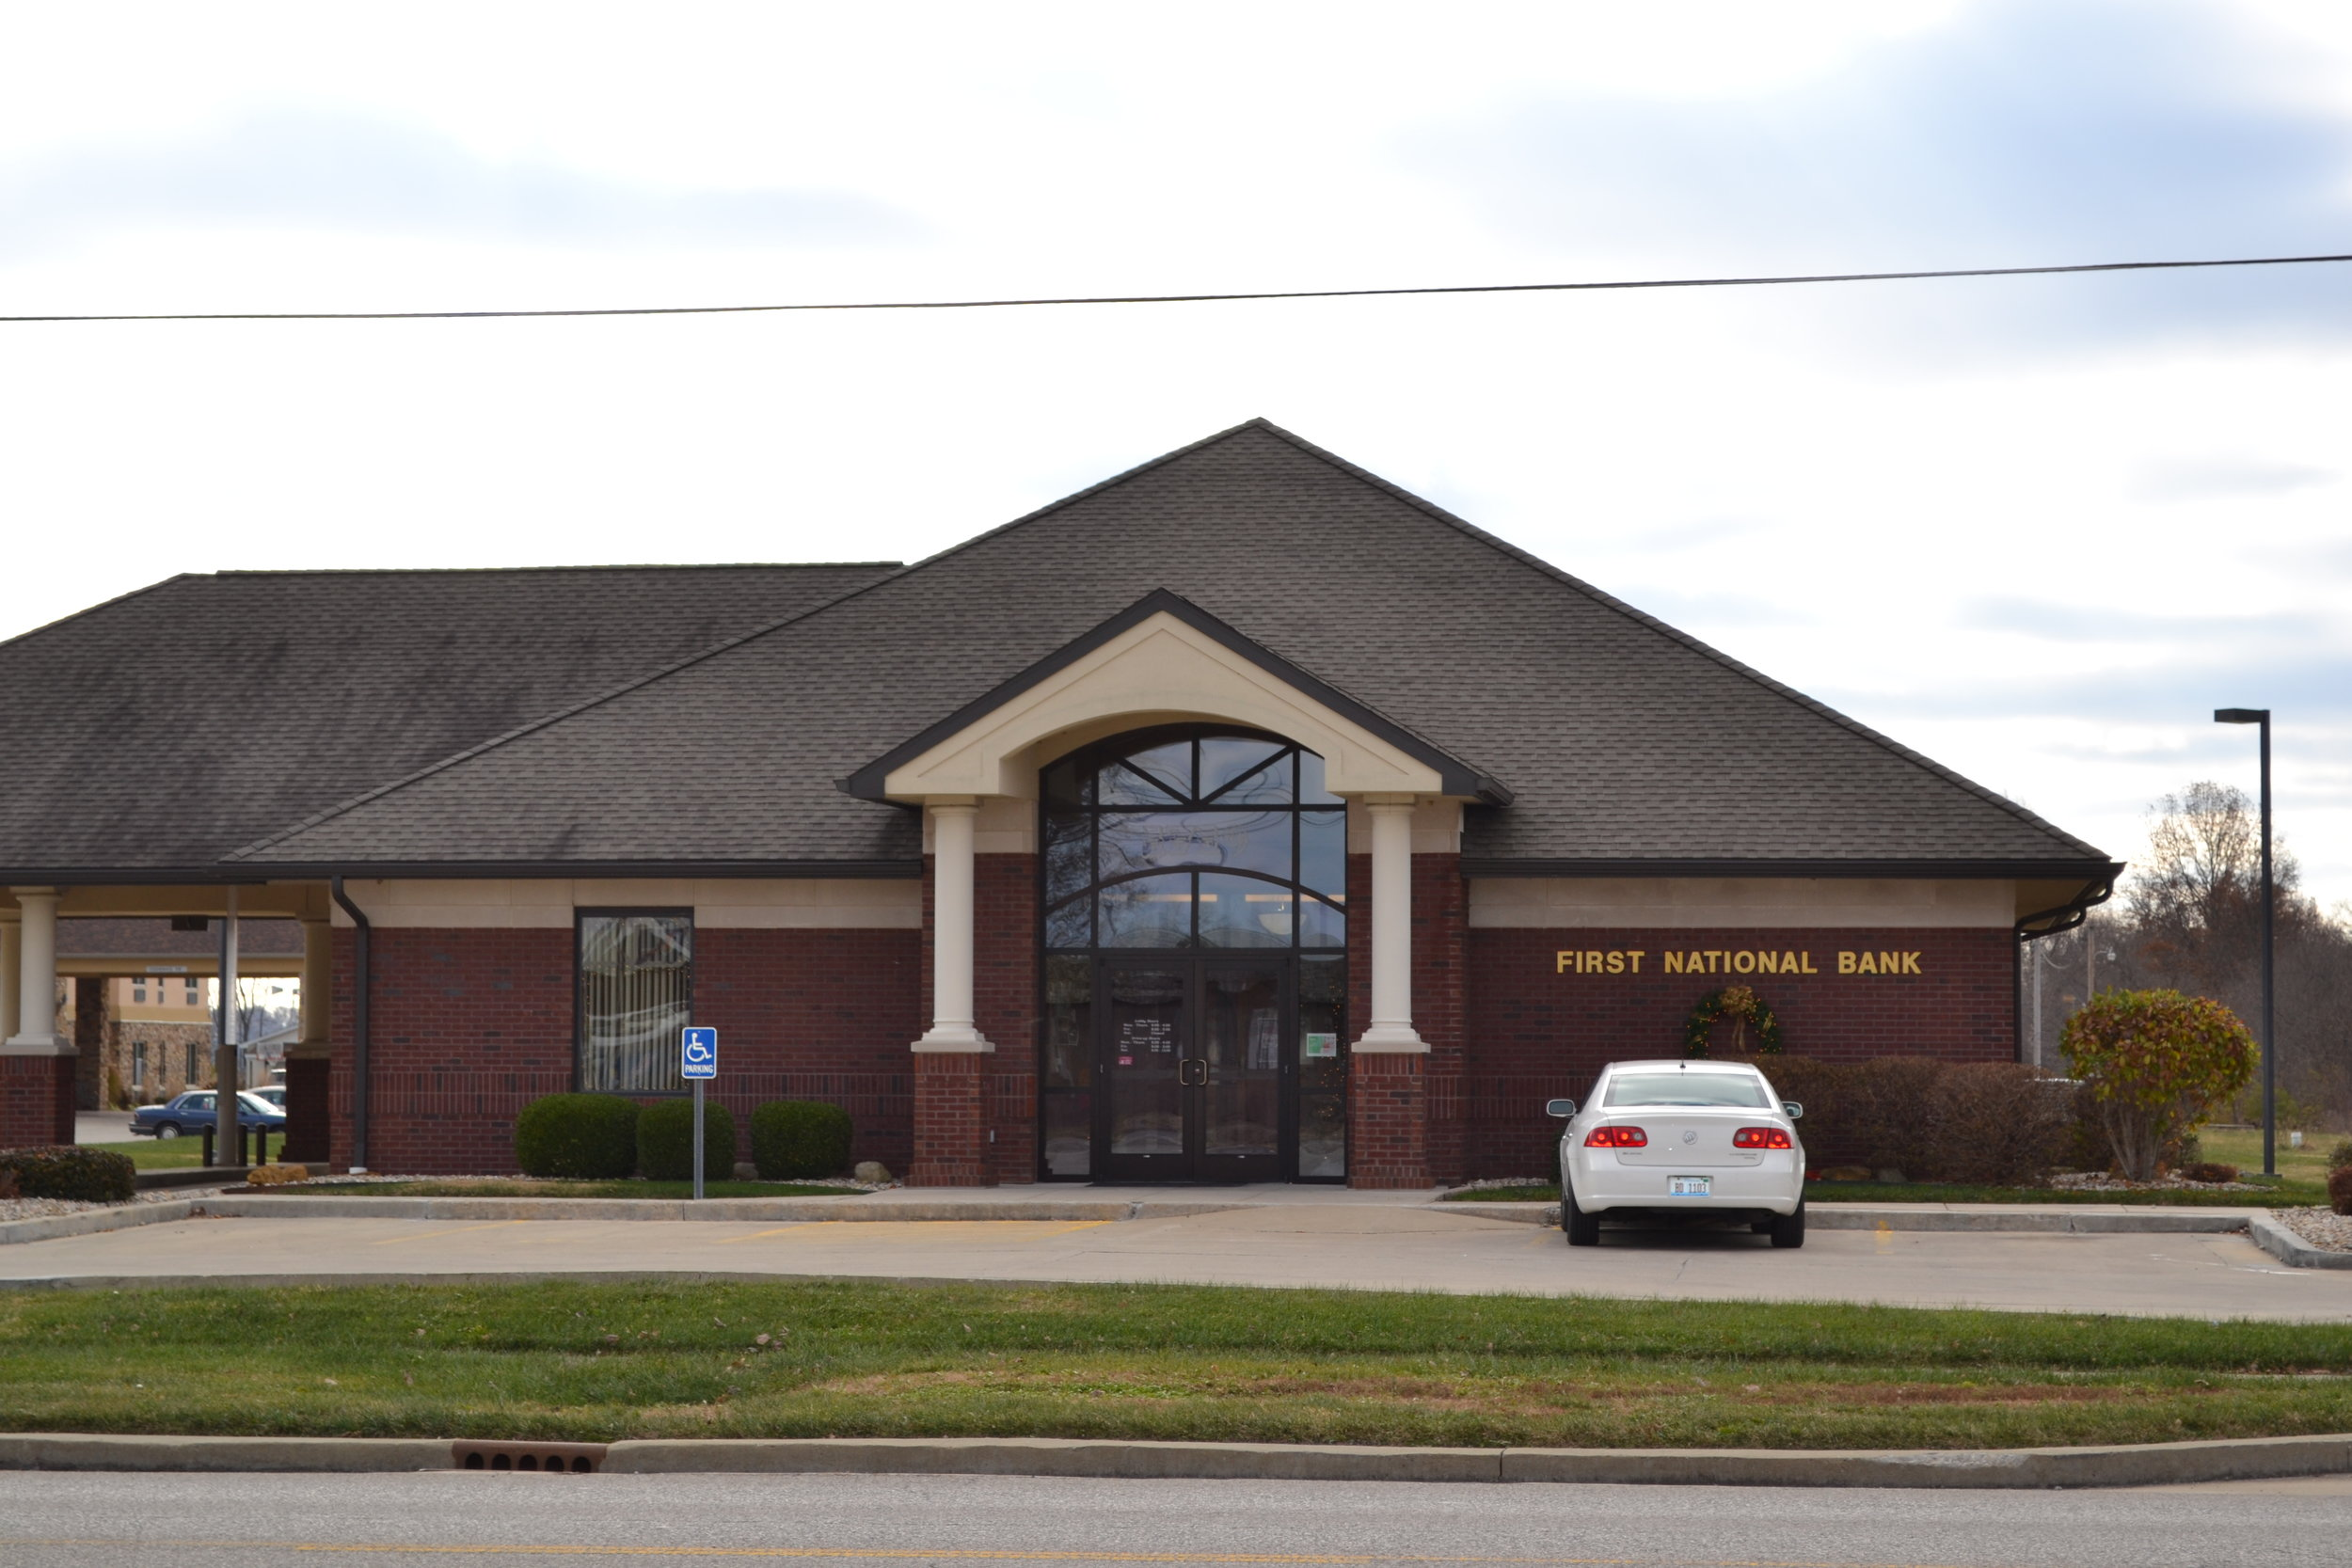 First National Bank, Robinson IL.